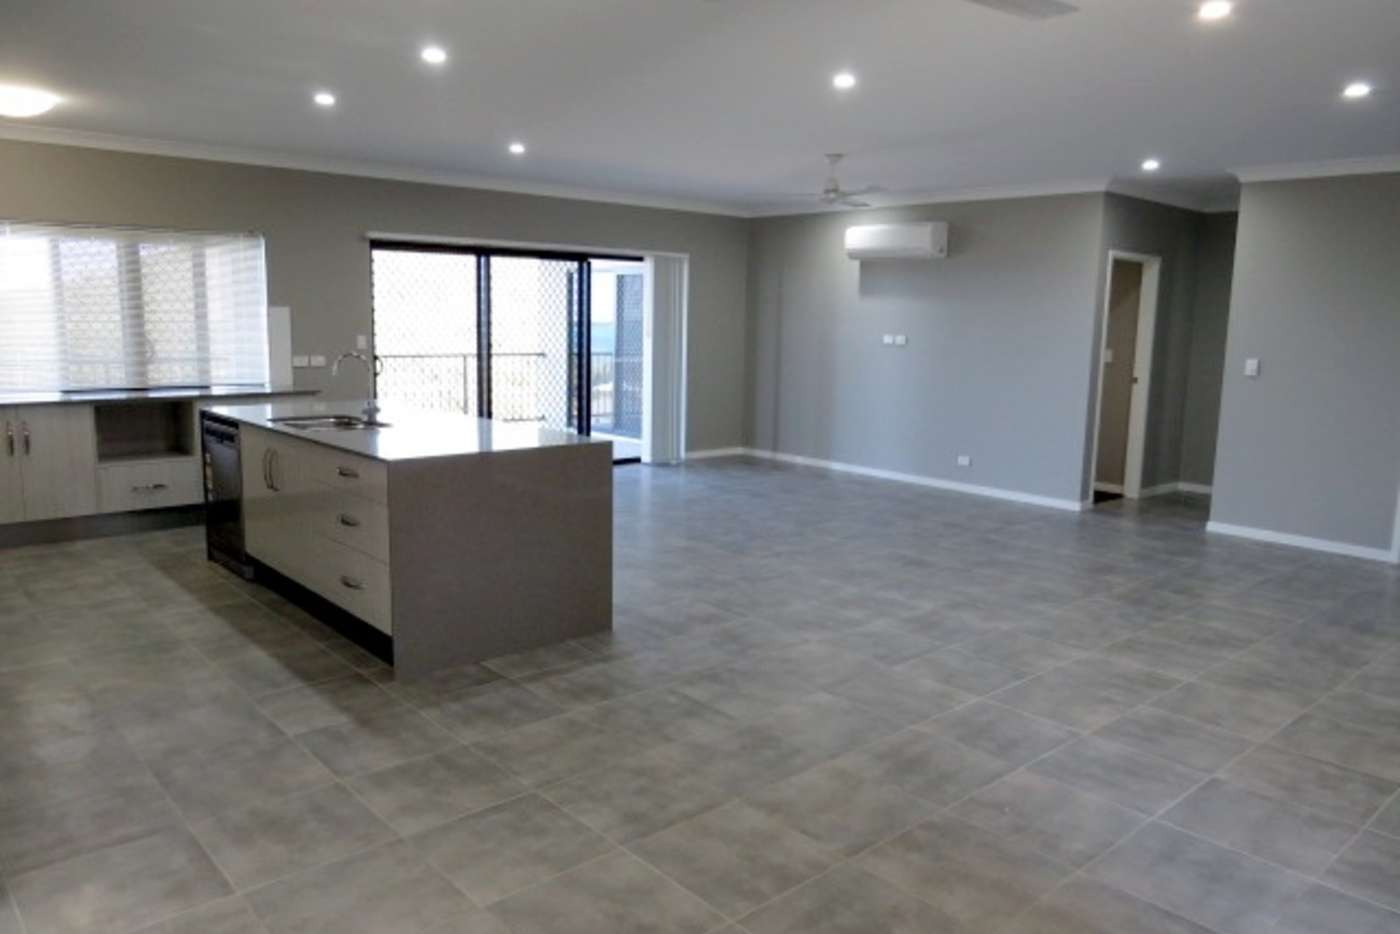 Seventh view of Homely house listing, 20 Grandview Terrace, Bowen QLD 4805